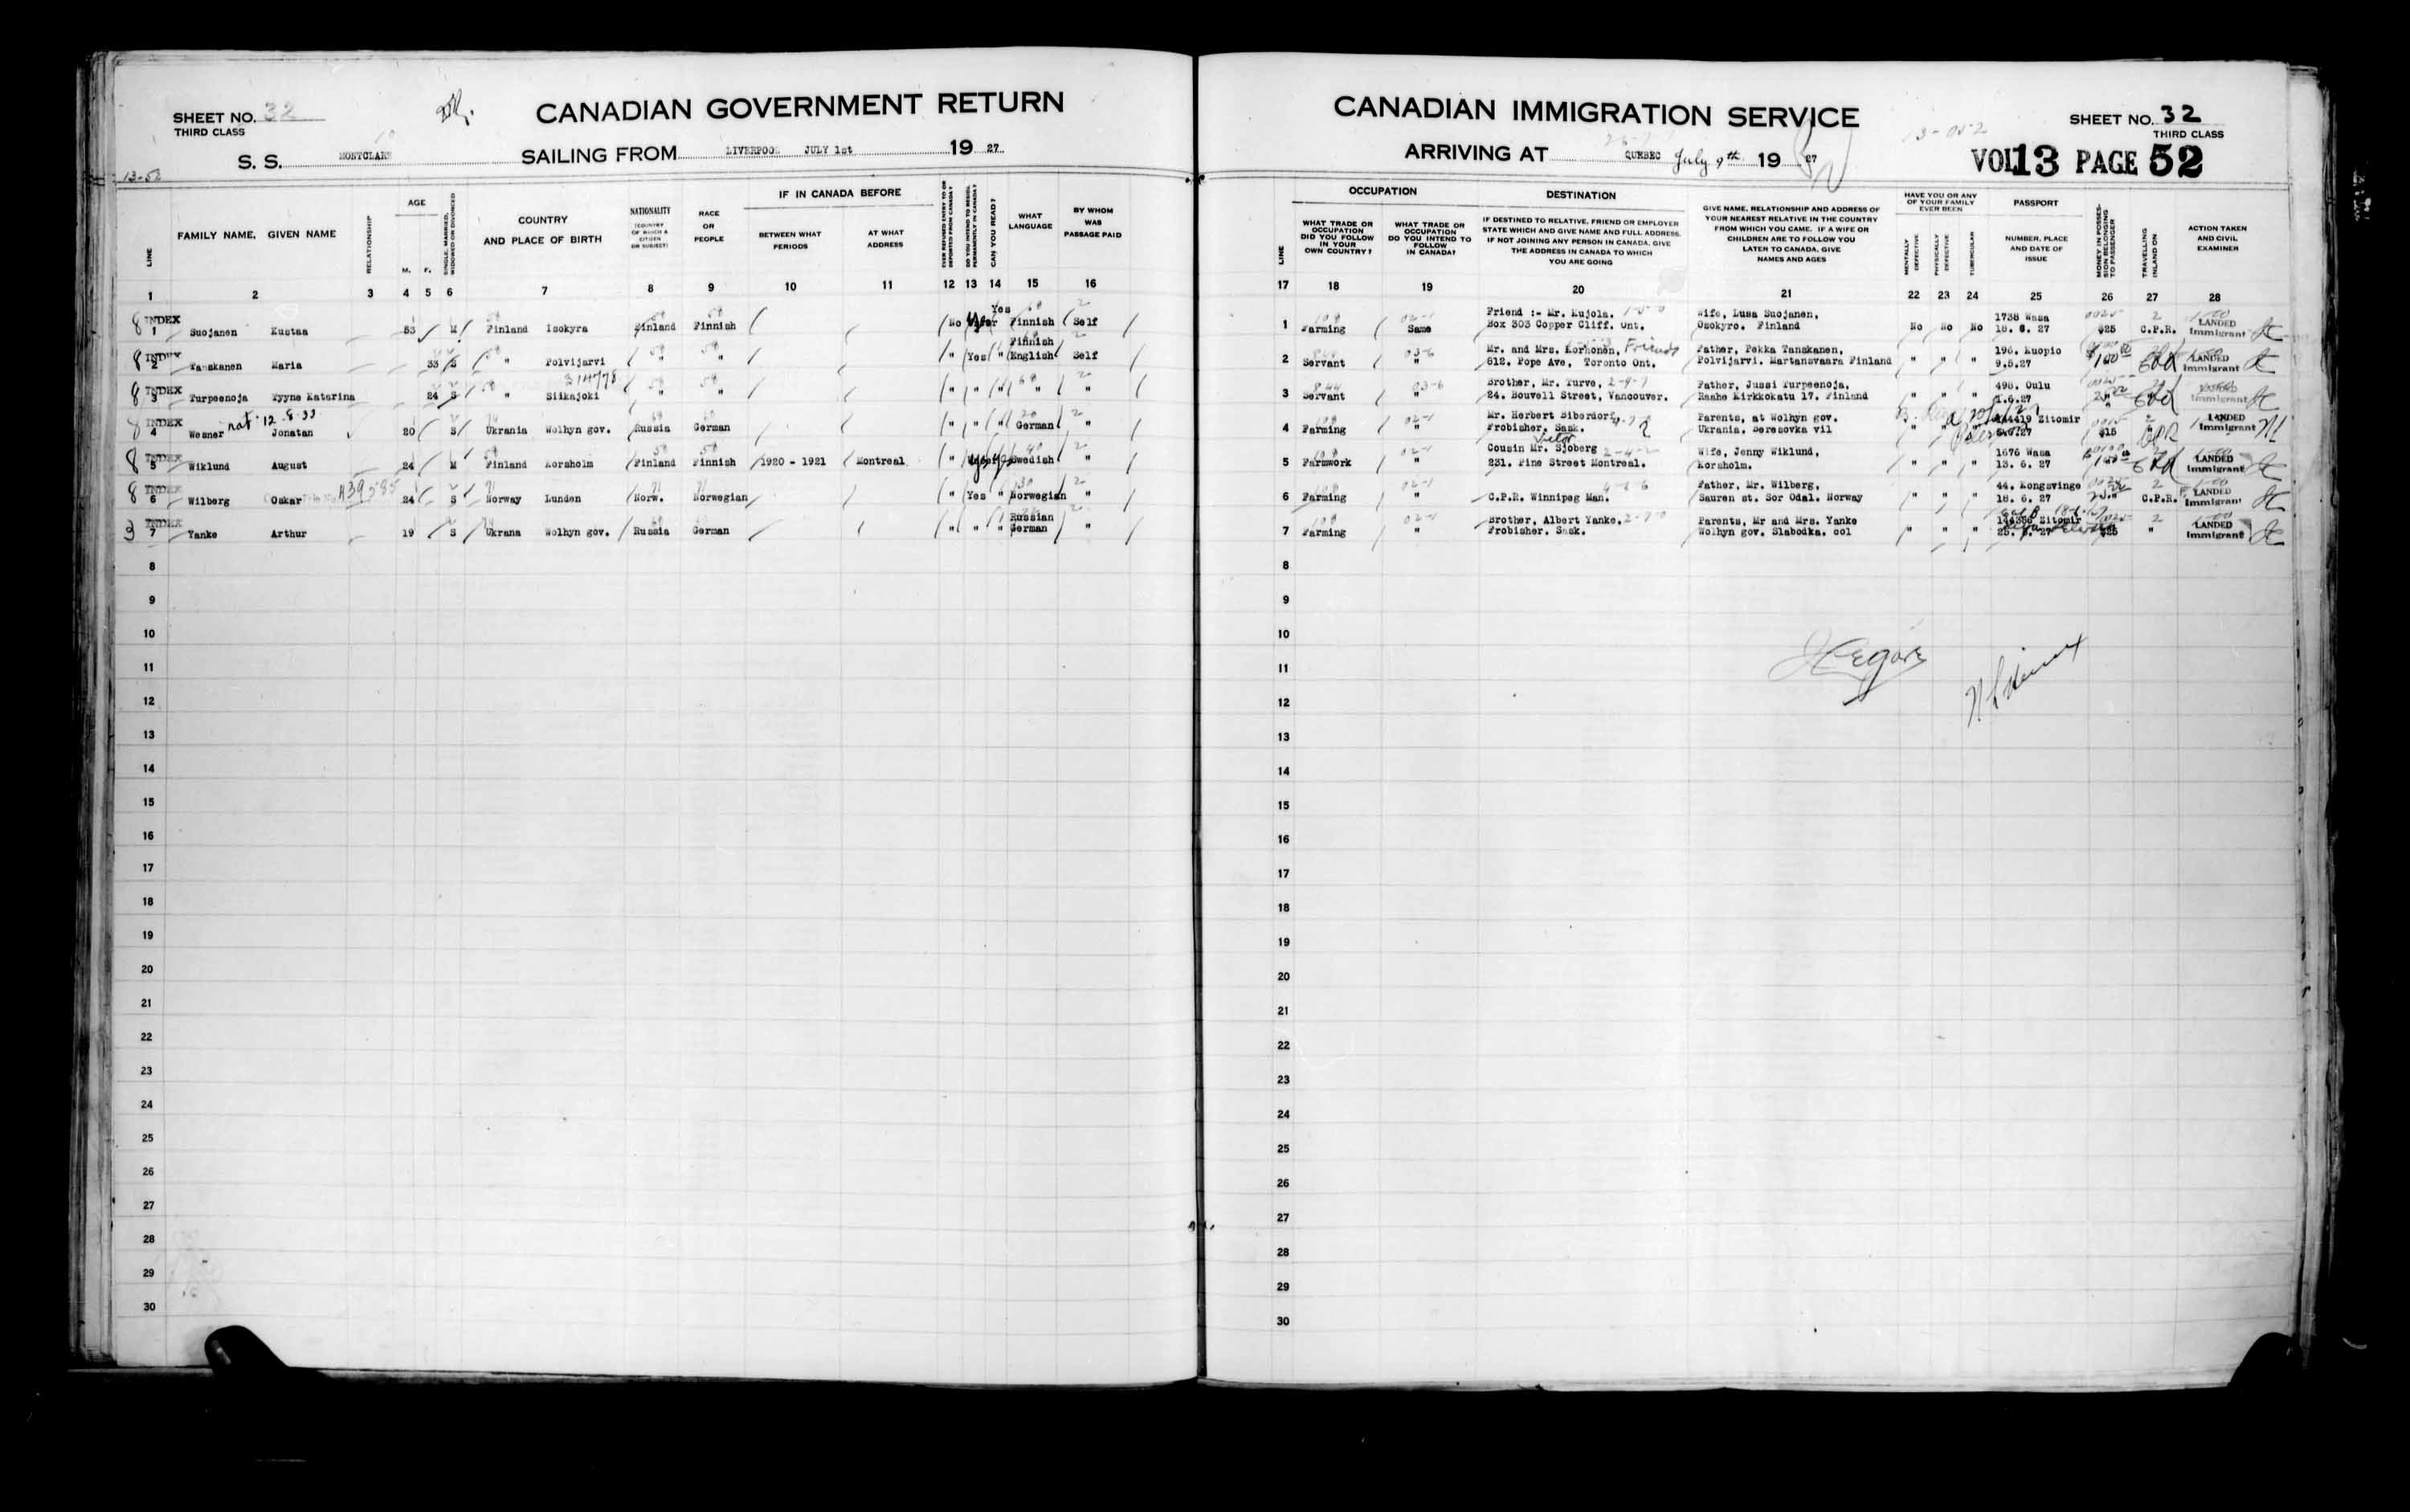 Title: Passenger Lists: Quebec City (1925-1935) - Mikan Number: 134839 - Microform: t-14734